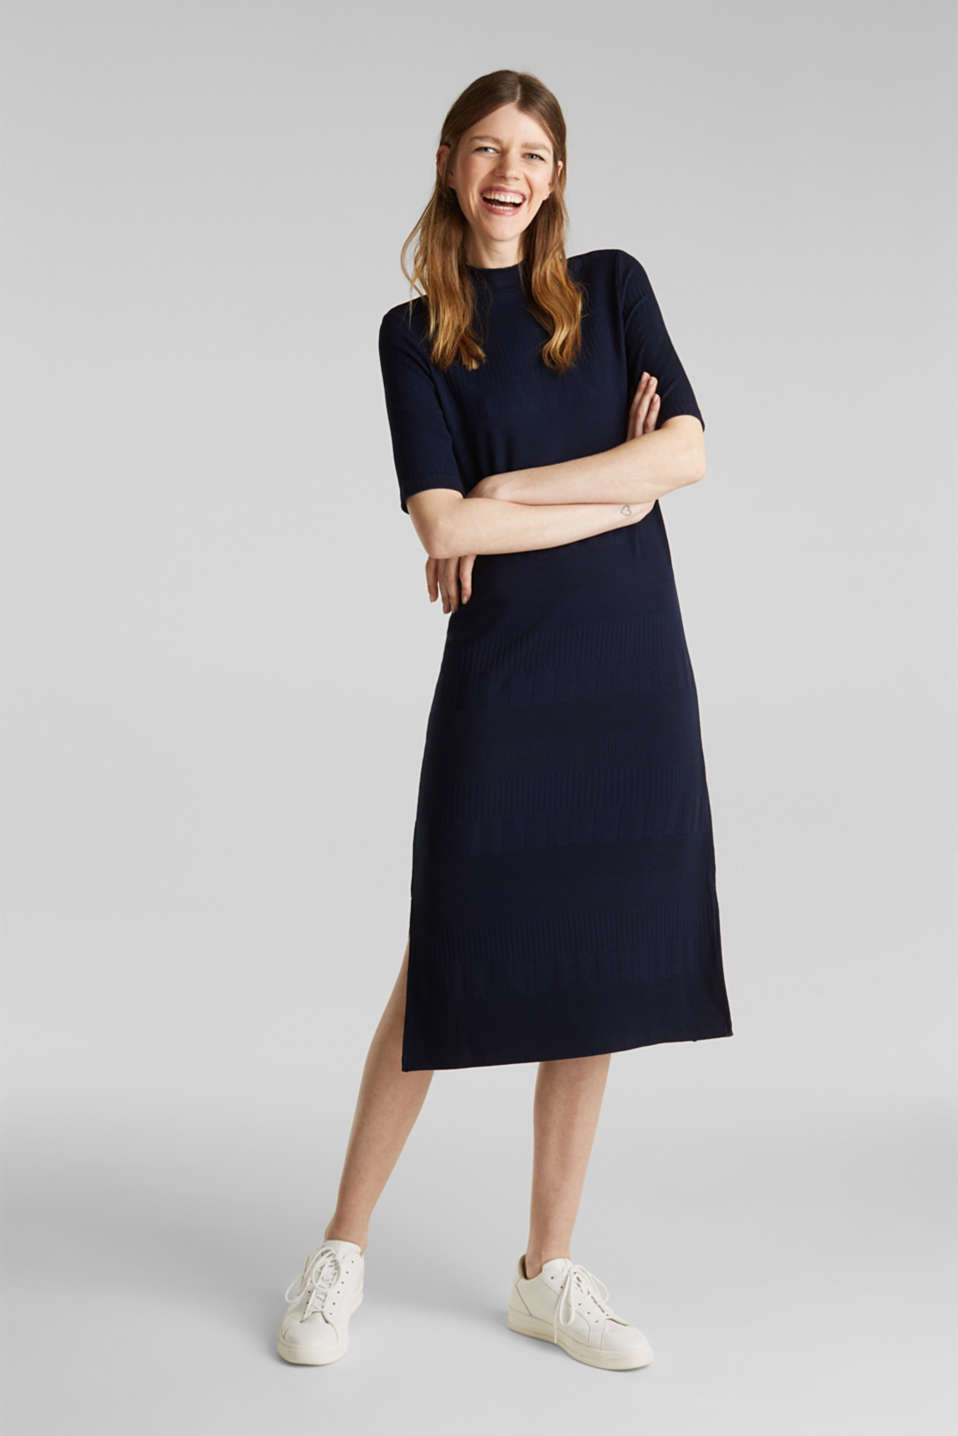 Stretch jersey dress with texture and a stand-up collar, NAVY, detail image number 1